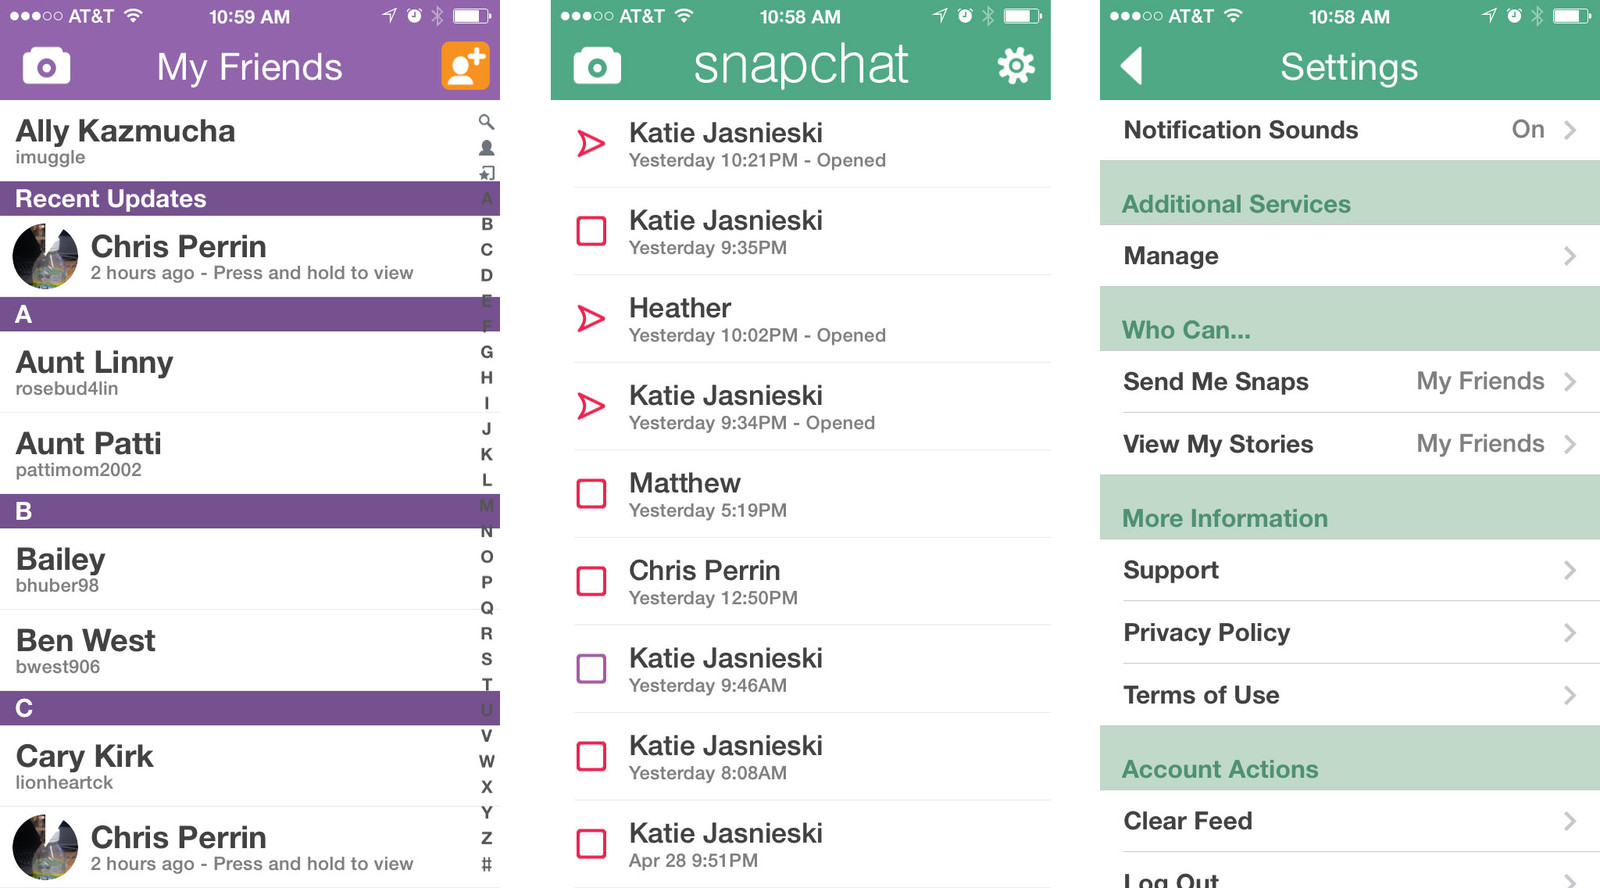 Best prom apps for iPhone: Snatchat